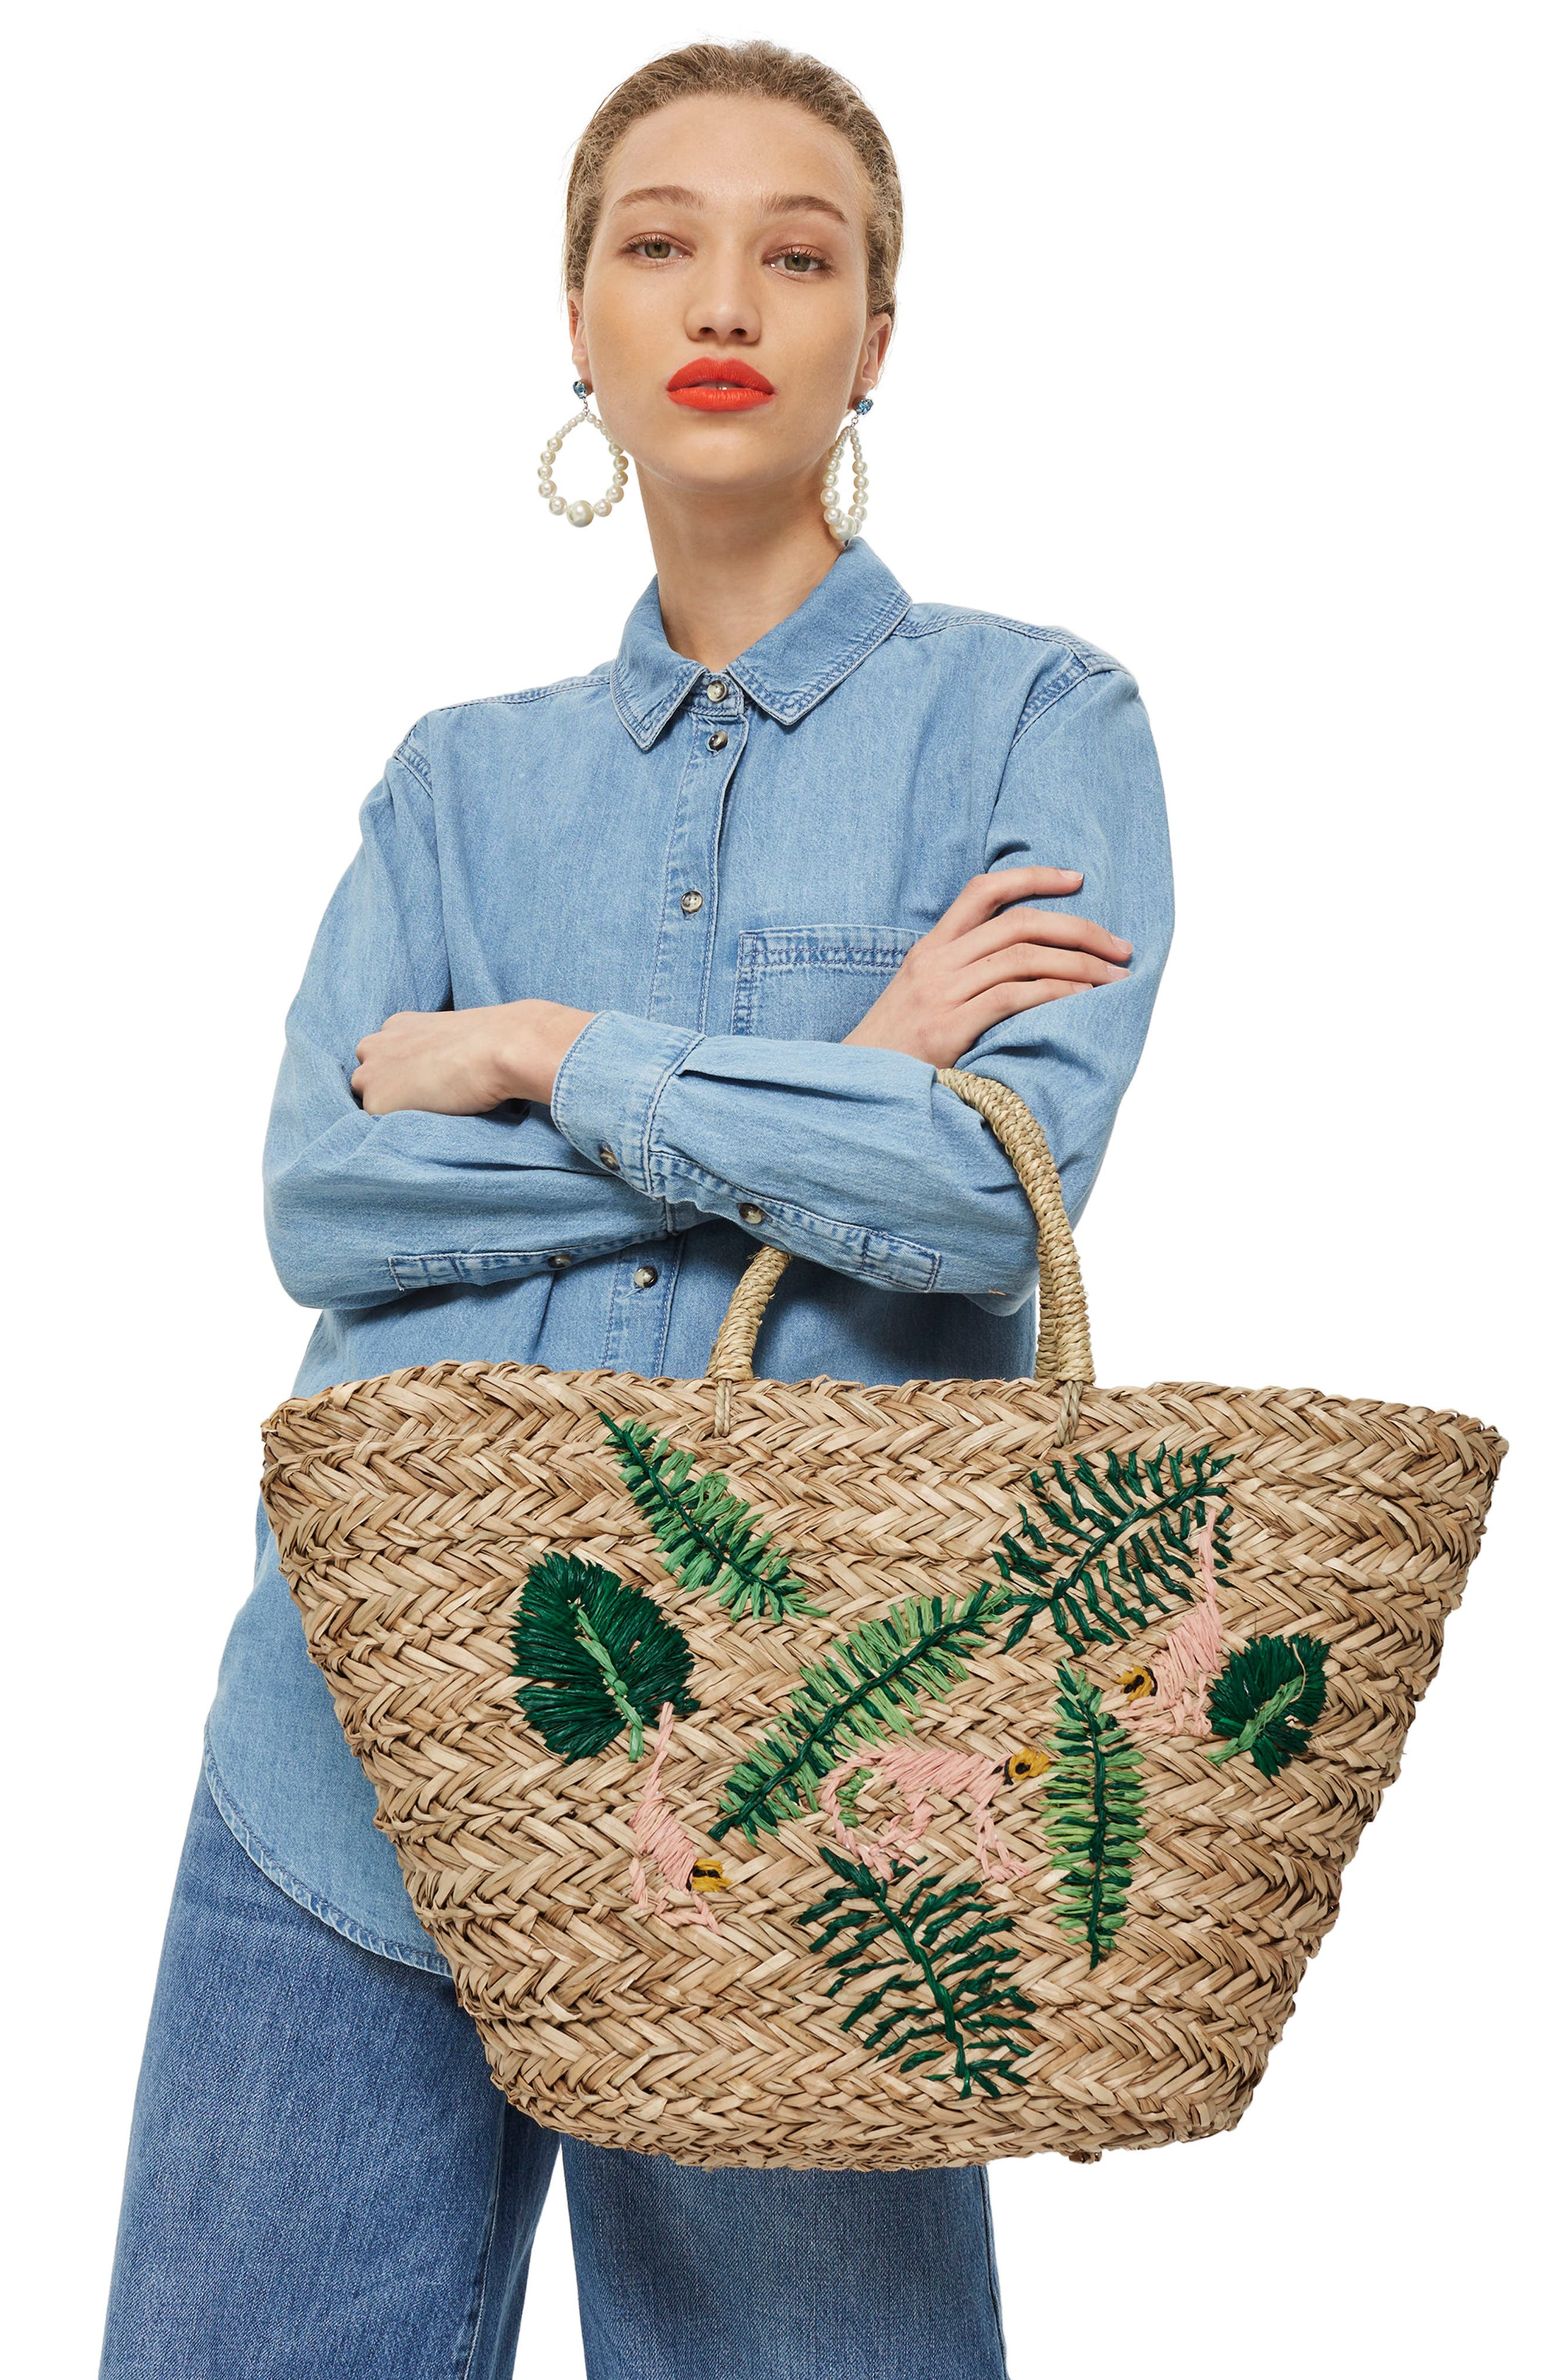 Barrio Monkey Embroidered Straw Tote Bag,                             Alternate thumbnail 2, color,                             250